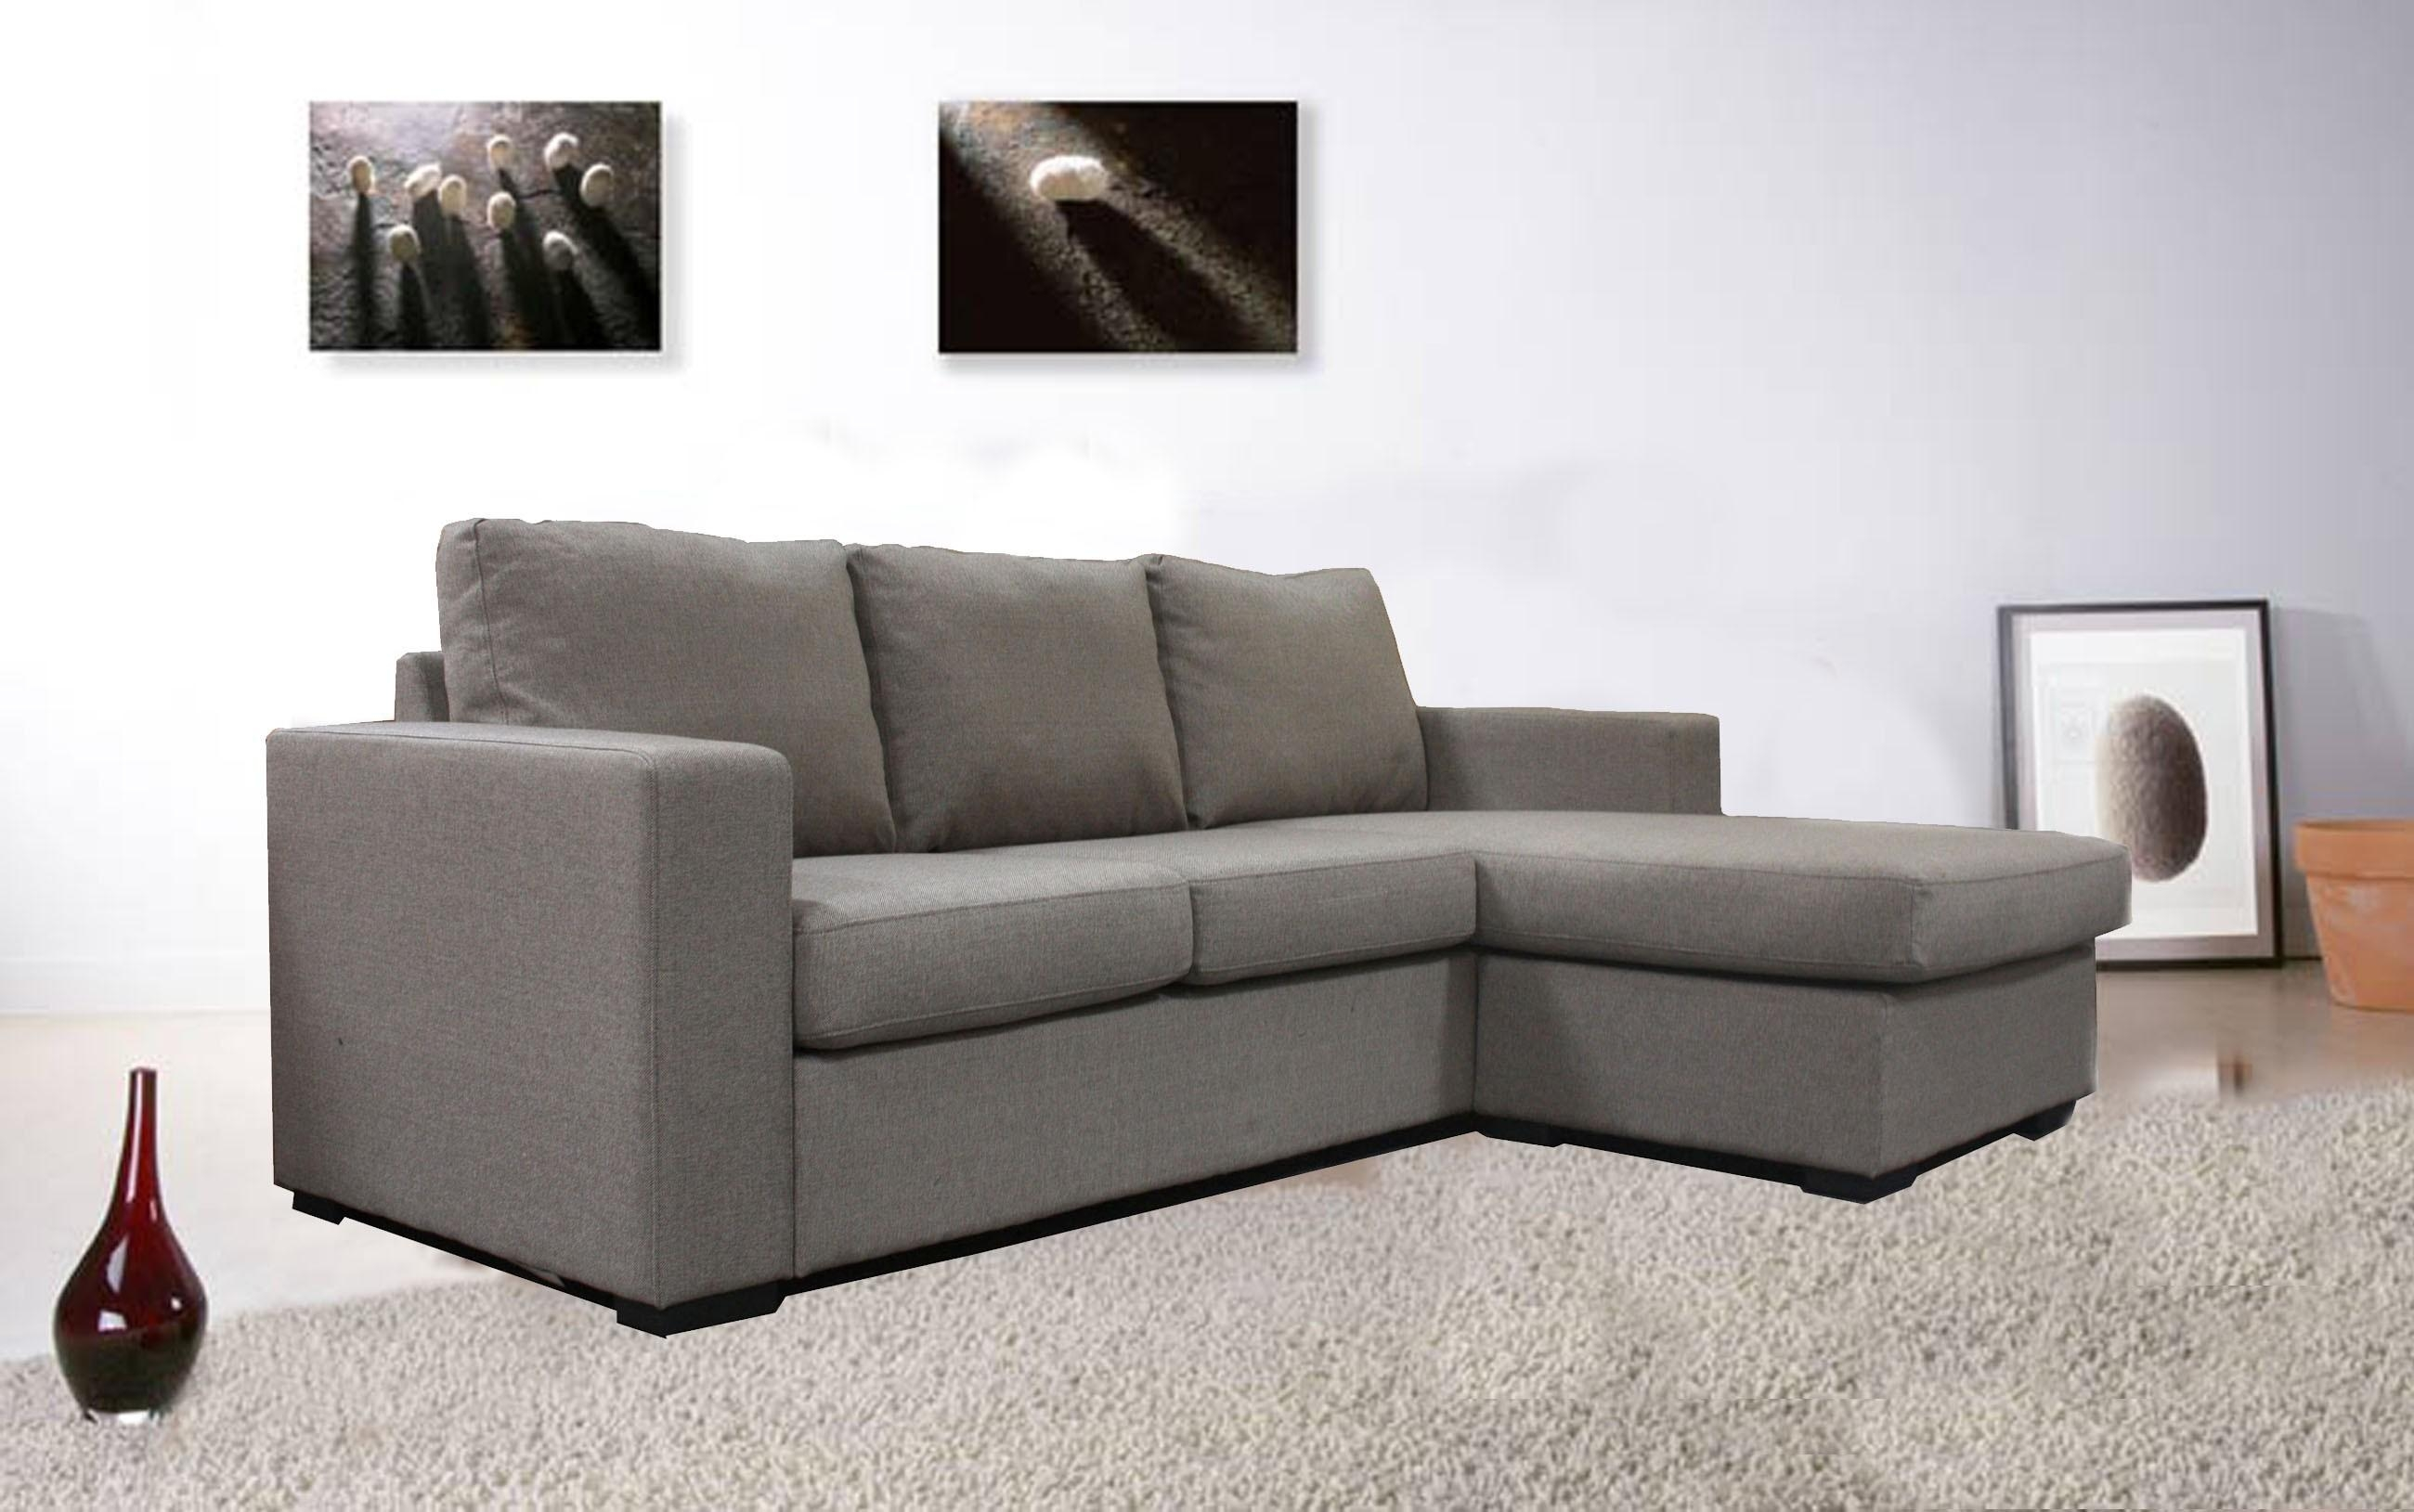 Lovely Small Scale Sectional Sofa | Cochabamba With Small Scale Sectional Sofas (Image 7 of 20)